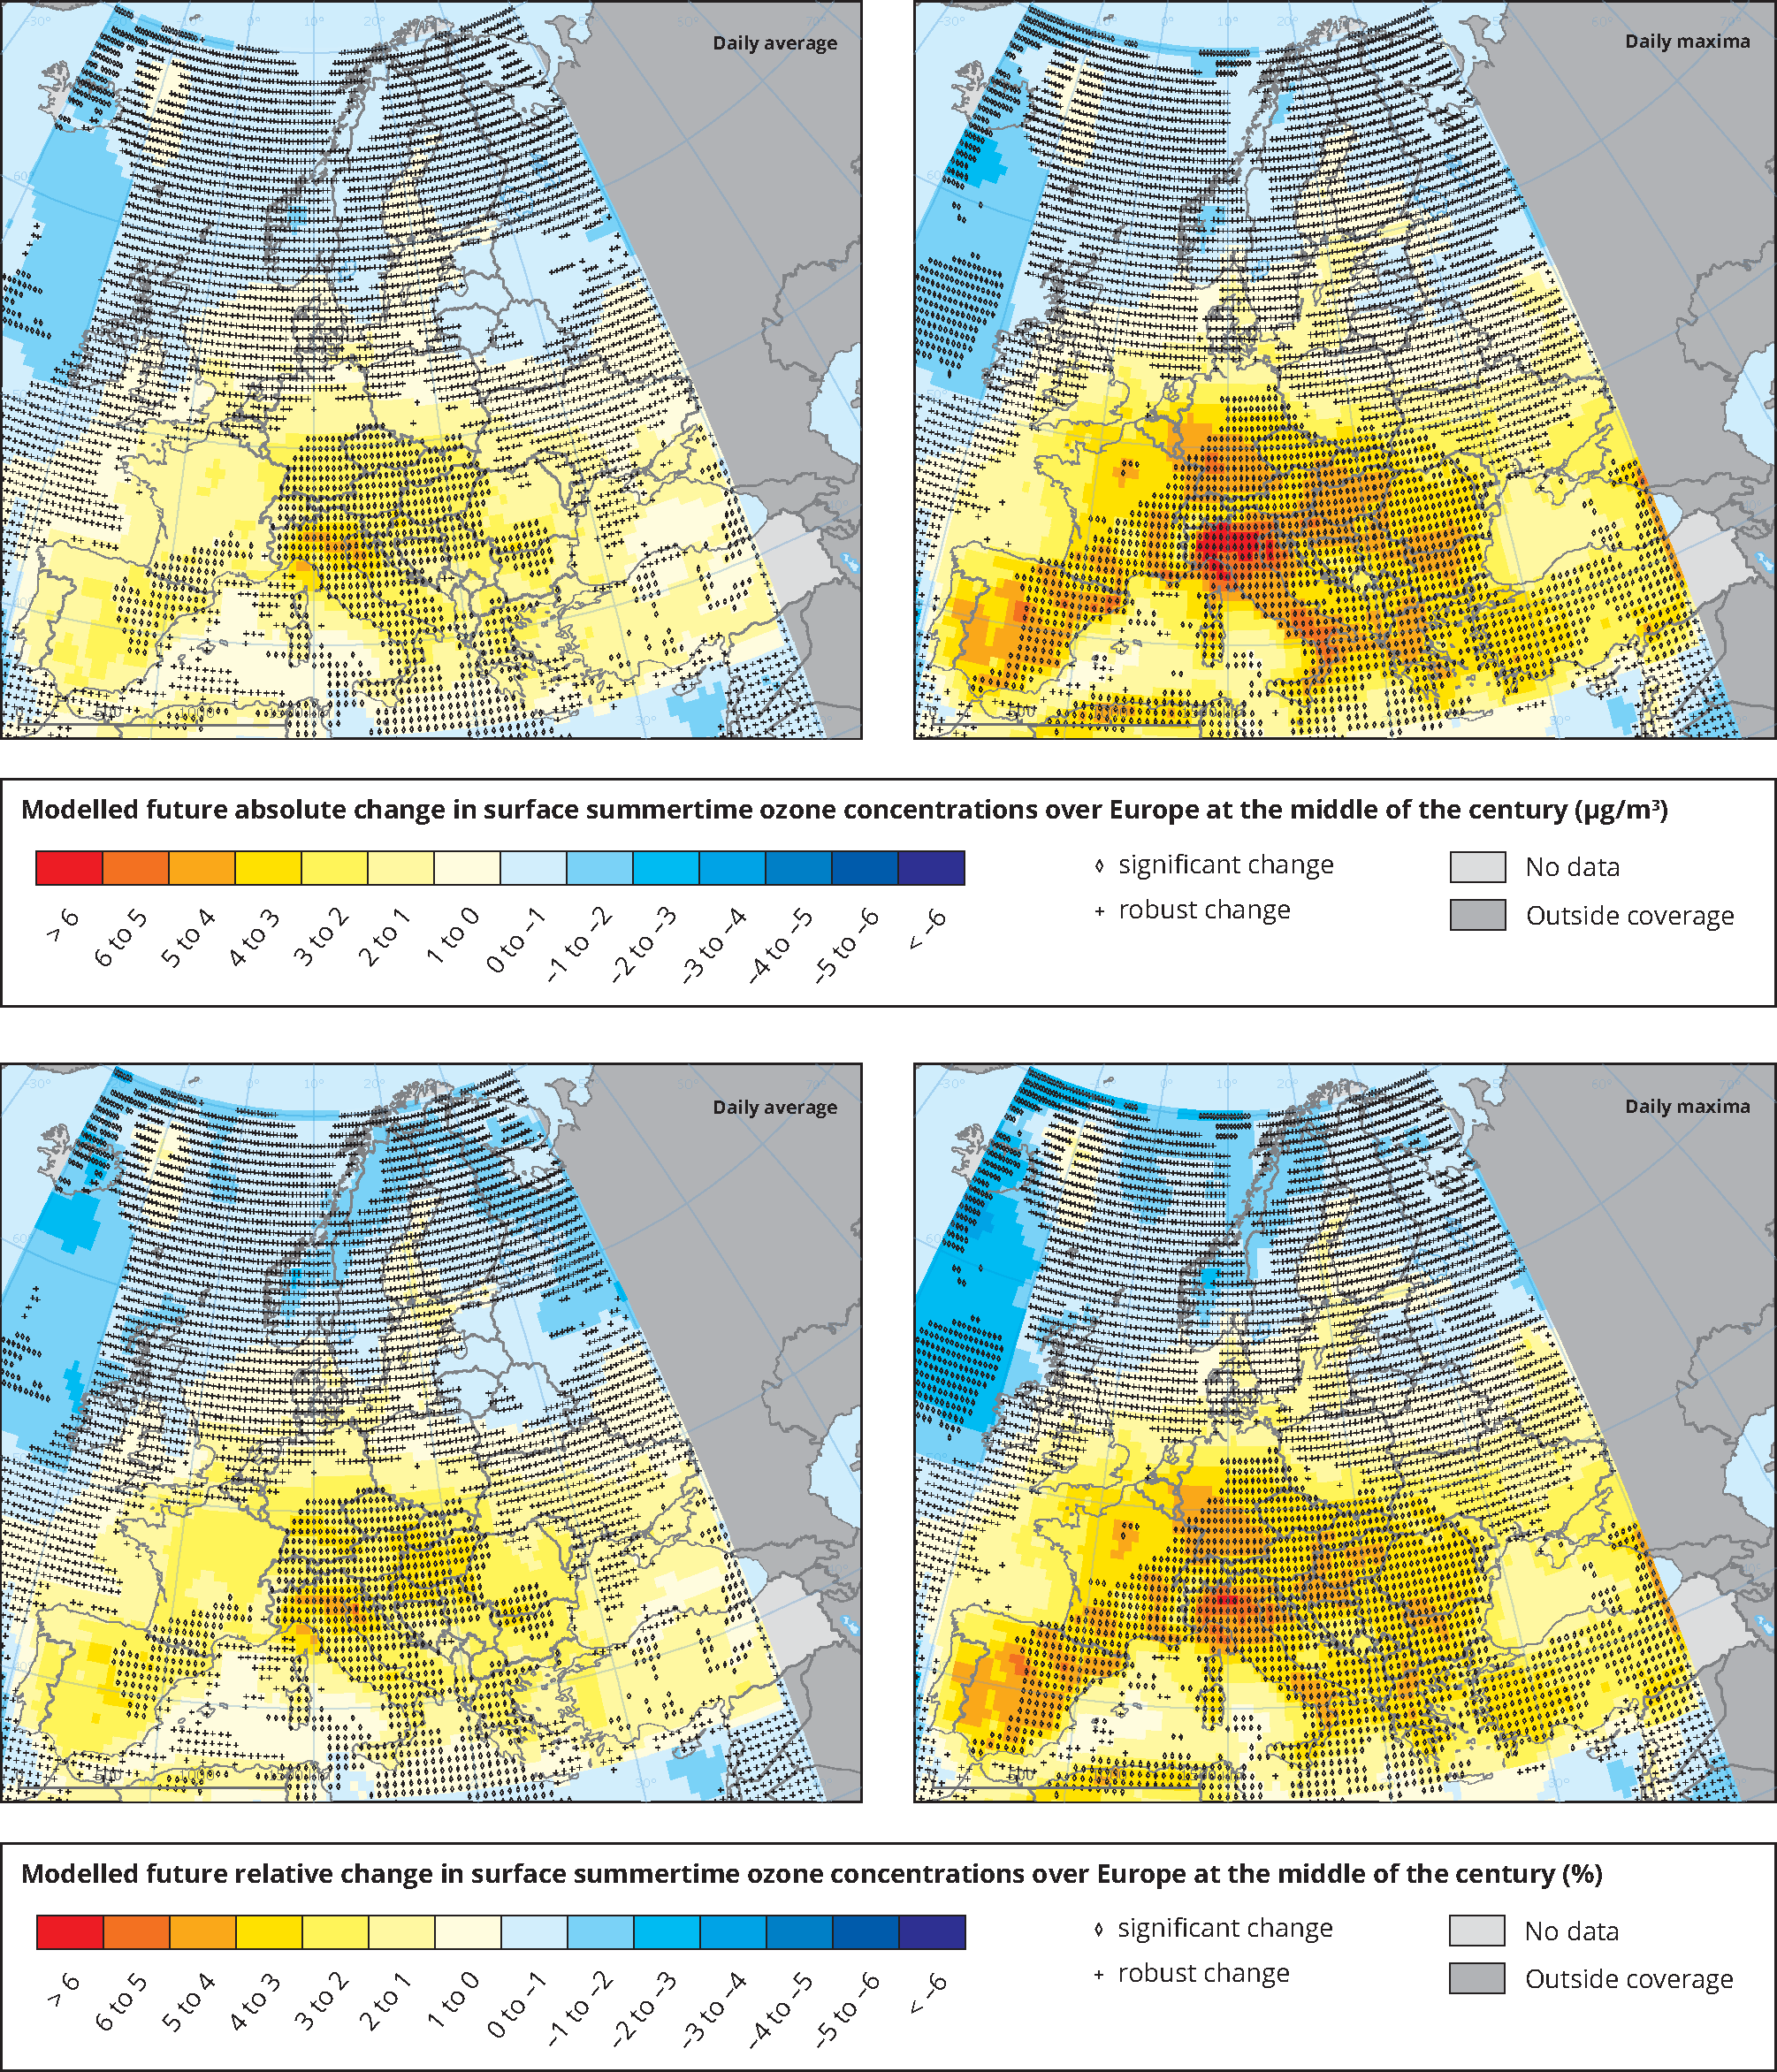 Modelled future change (absolute and relative) in surface summertime ozone concentrations (left: daily average, right: daily maxima) over Europe at the middle of the century